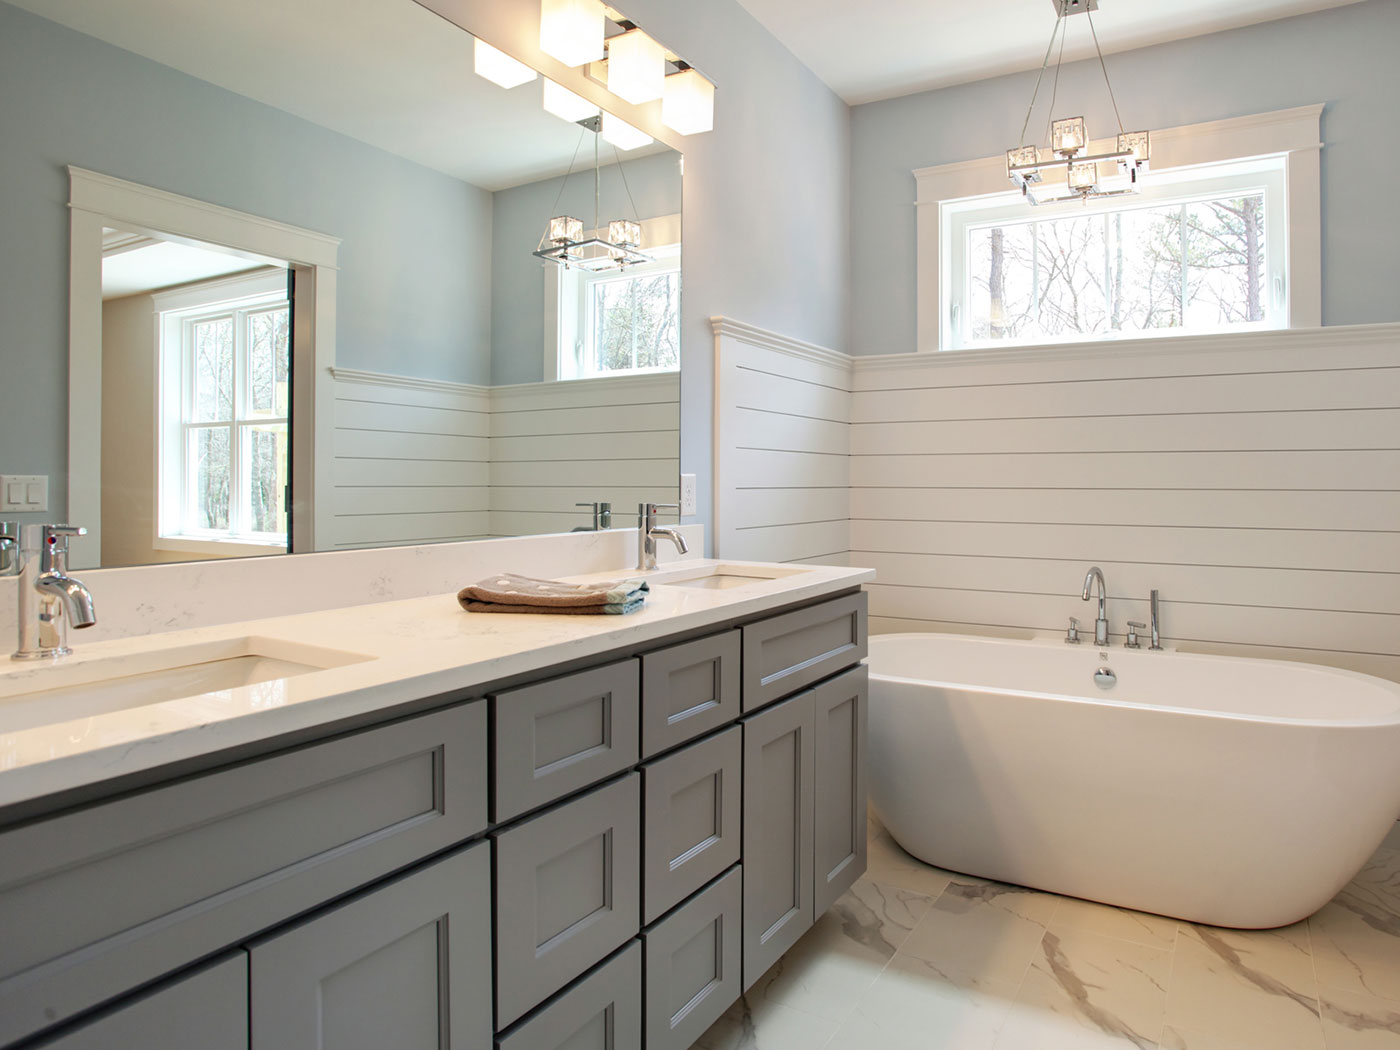 Standard Bathroom Cabinets - Craftworks Custom Cabinetry - Rochester, NY